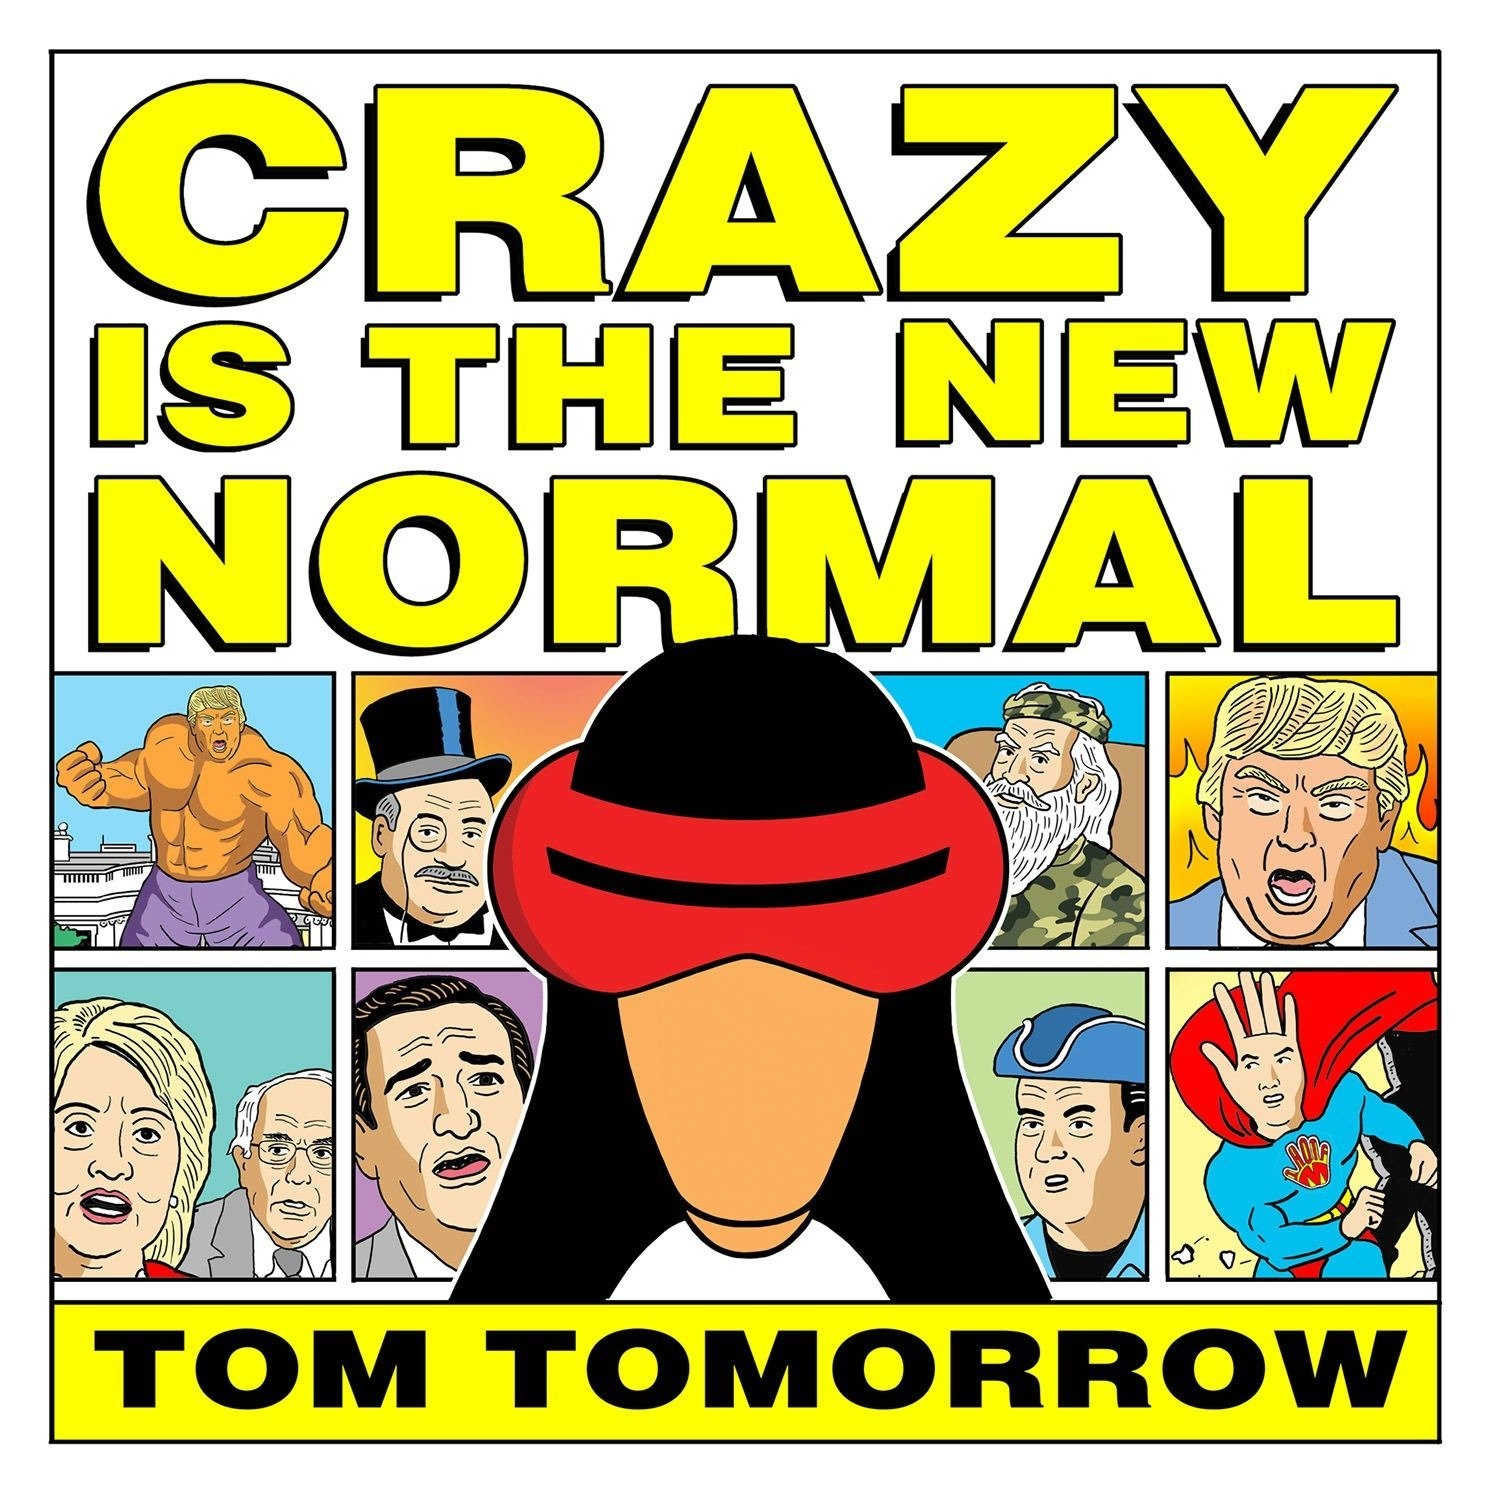 Amazing comic series from crazy world